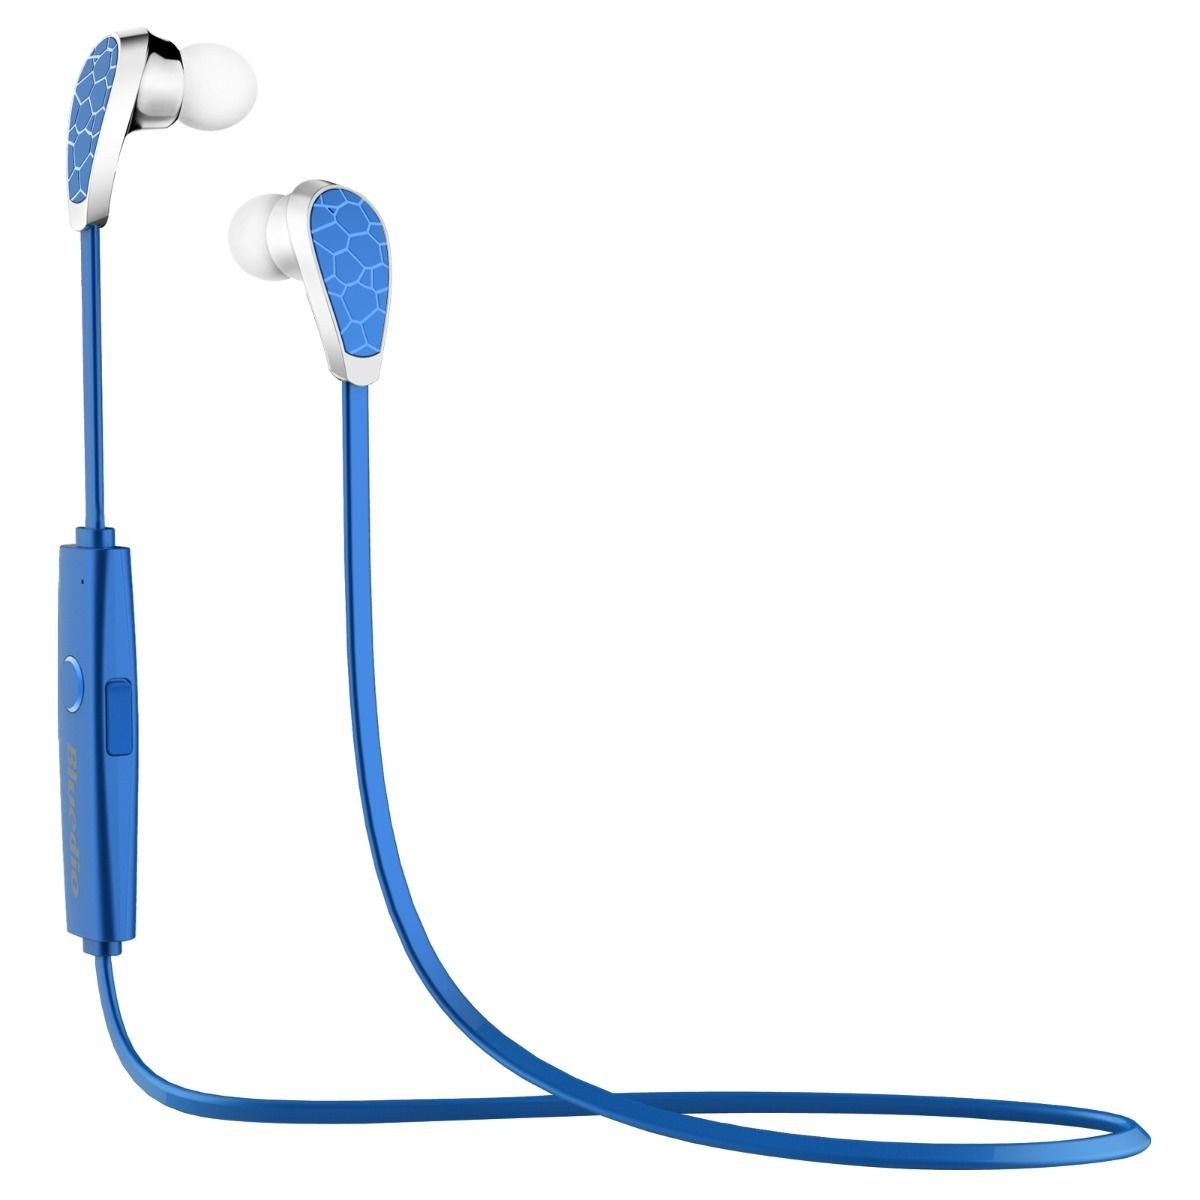 Blue Bluetooth 4.1 Wireless Stereo Earphone Handsfree Sport Headset for iPhone 5 5S 6 db